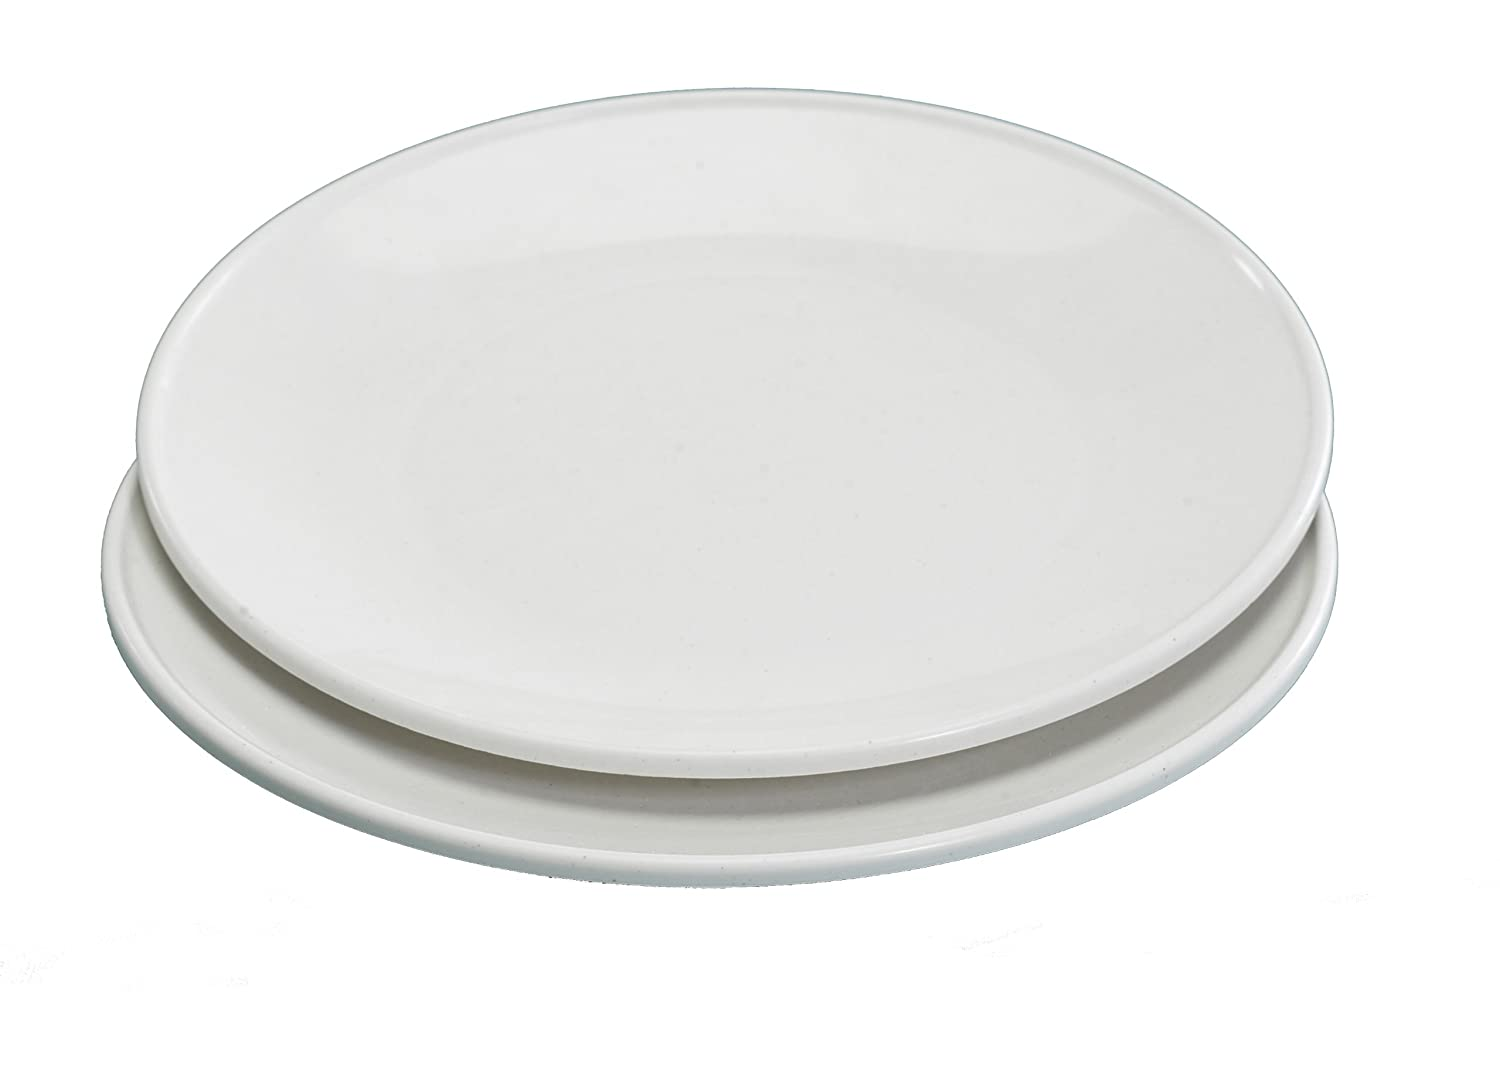 Amazon.com: Nordic Ware Set Of 2 10 Inch Microwave Dinner Plates:  Microwaveable Plastic Plates: Kitchen U0026 Dining